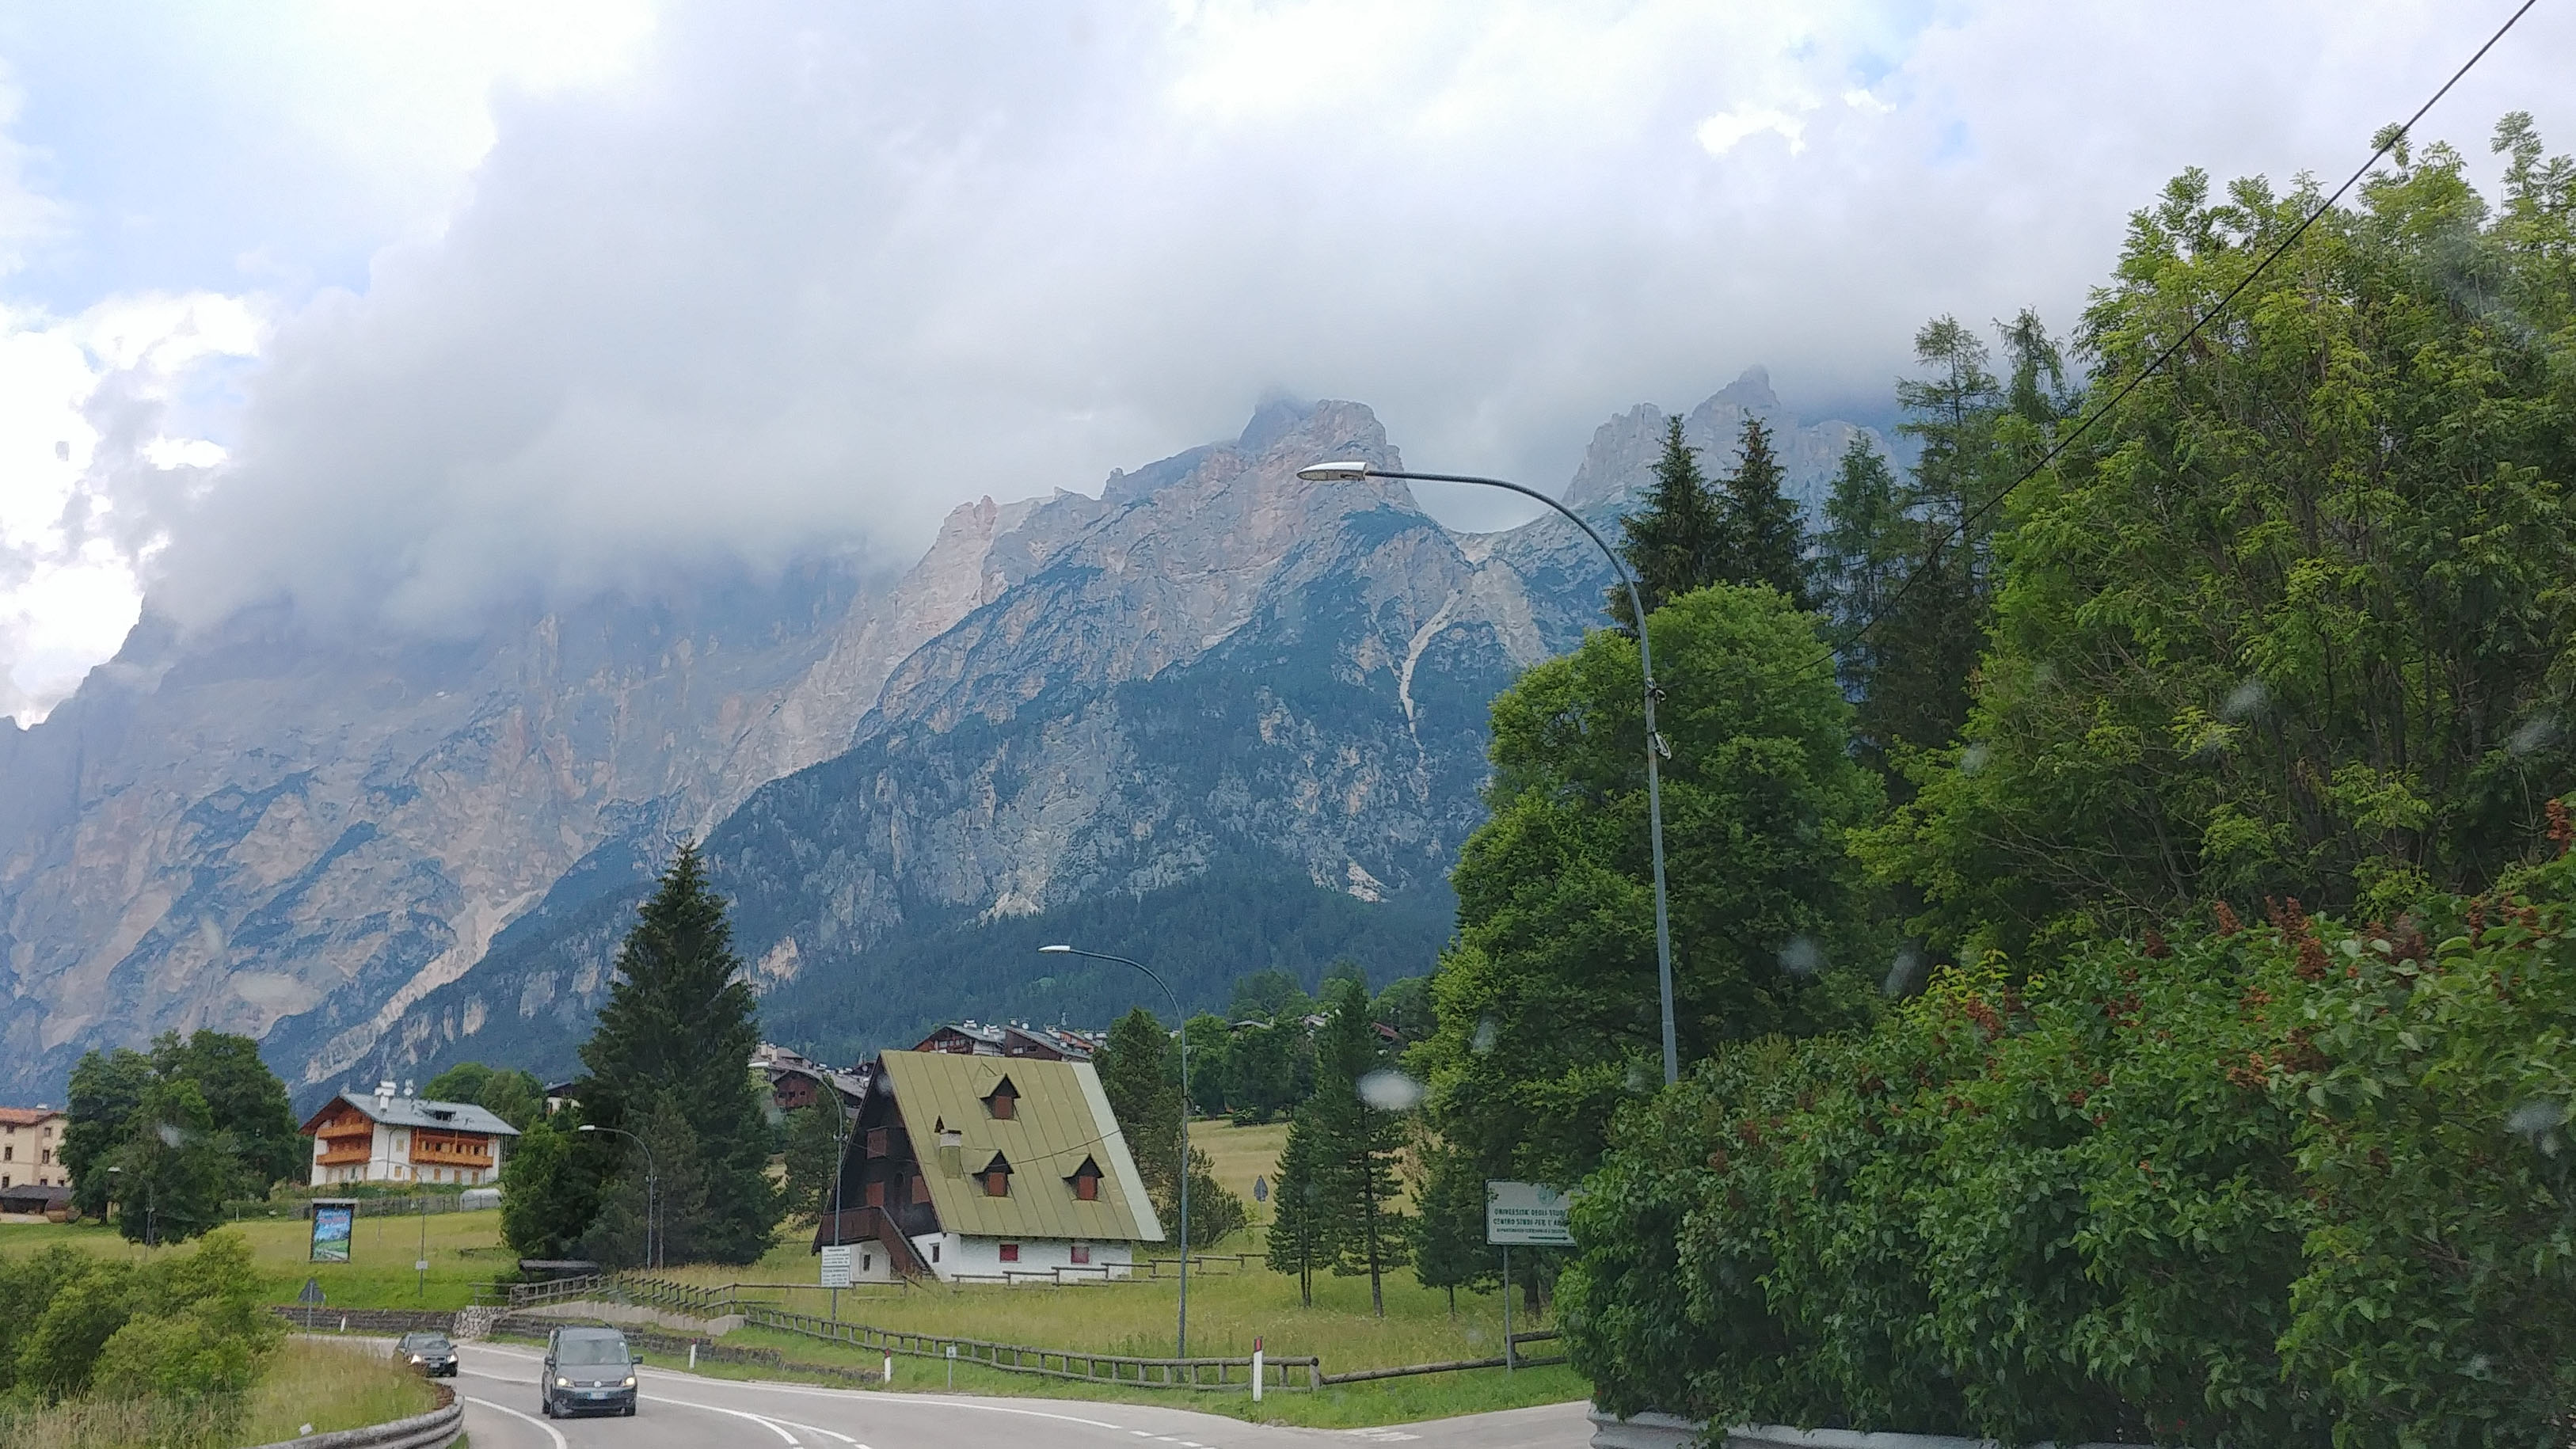 Enroute to Cortina d' Ampezza